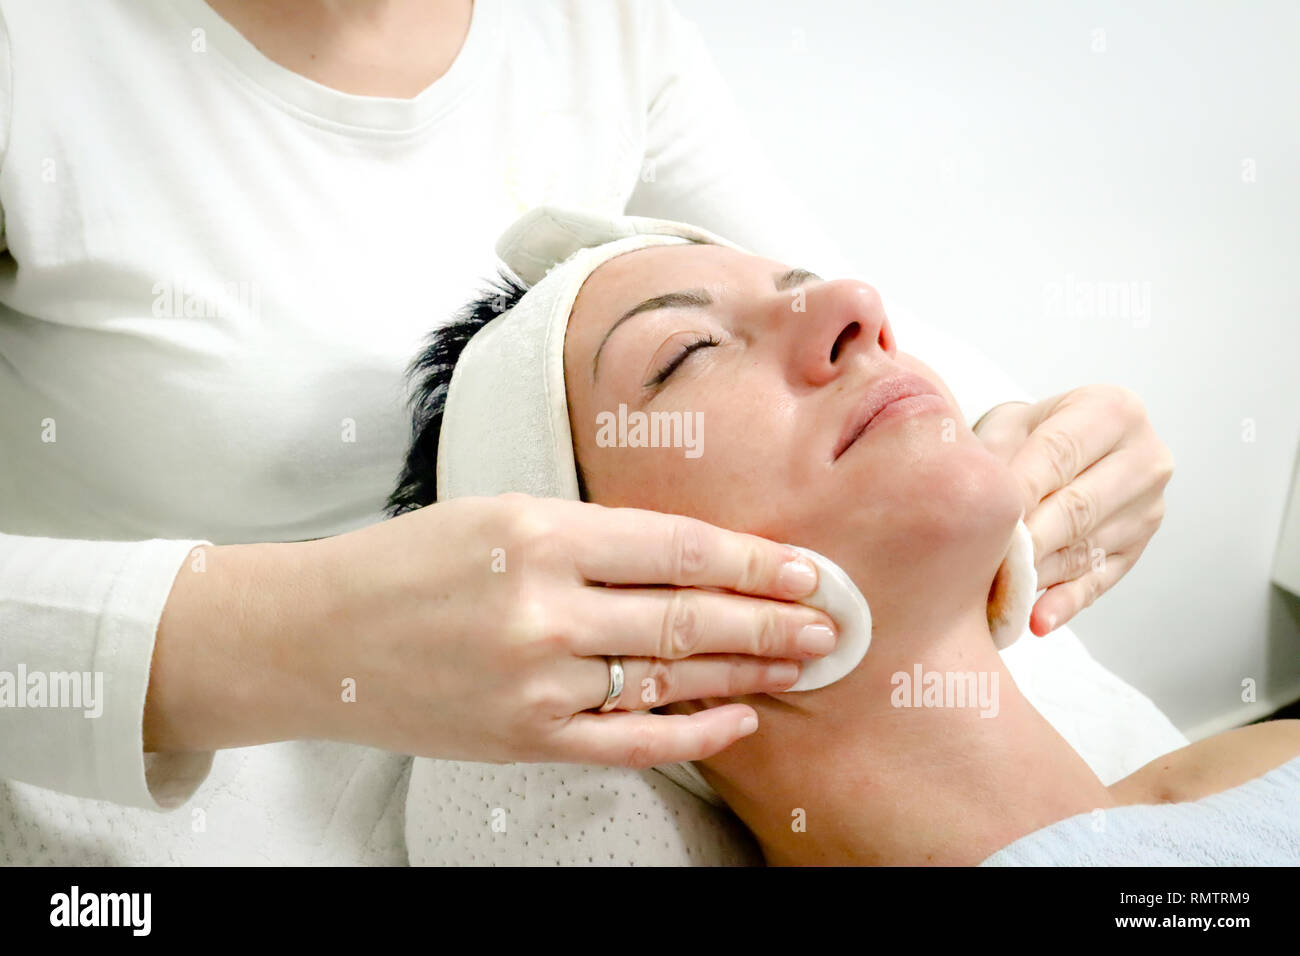 beautician worker gently massages face of female costumer in beauty salon - Stock Image